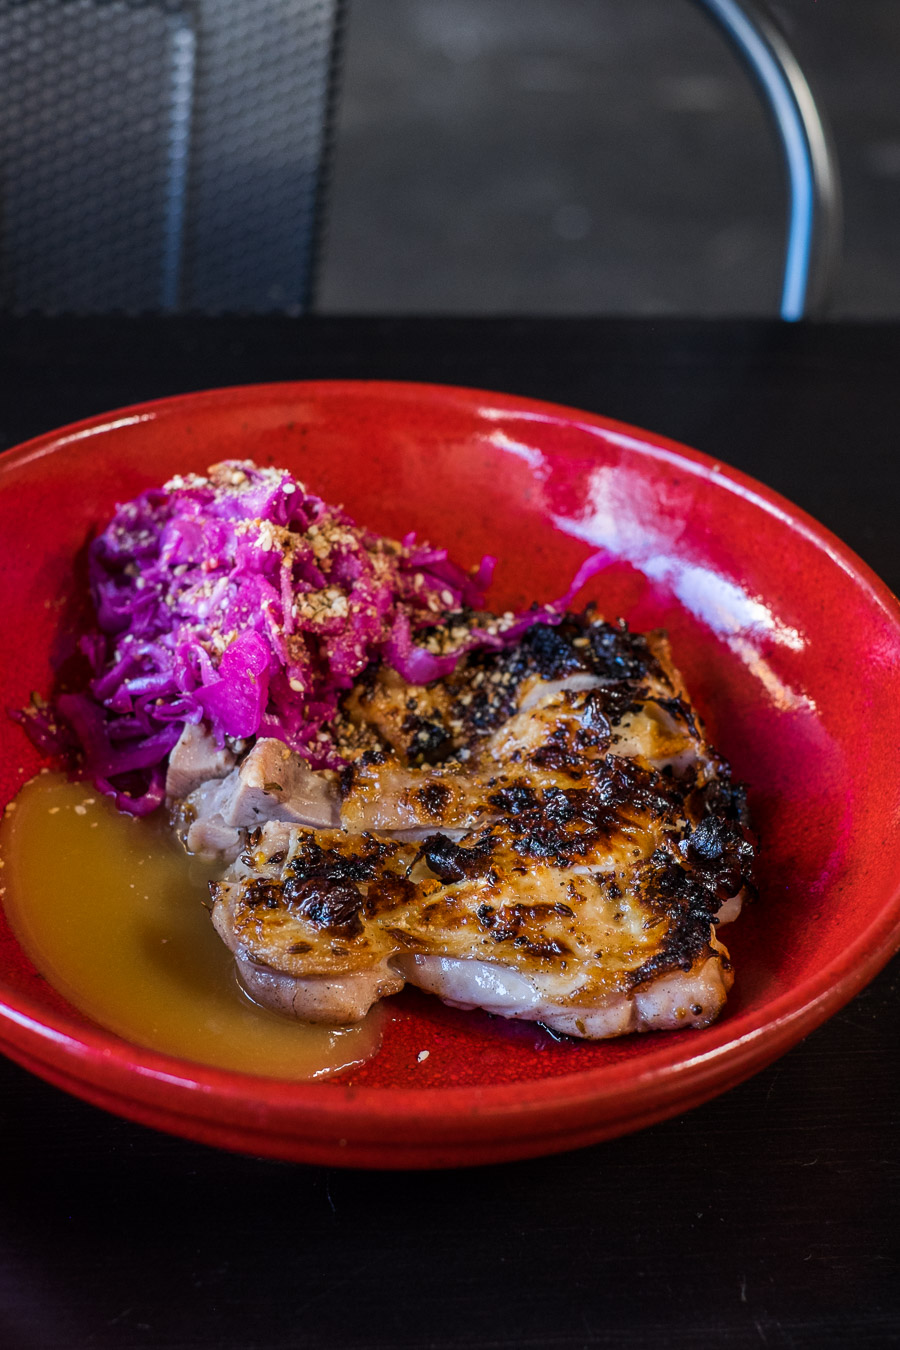 Wood-roasted chicken pieces, red cabbage, miso sauce (AU$21)